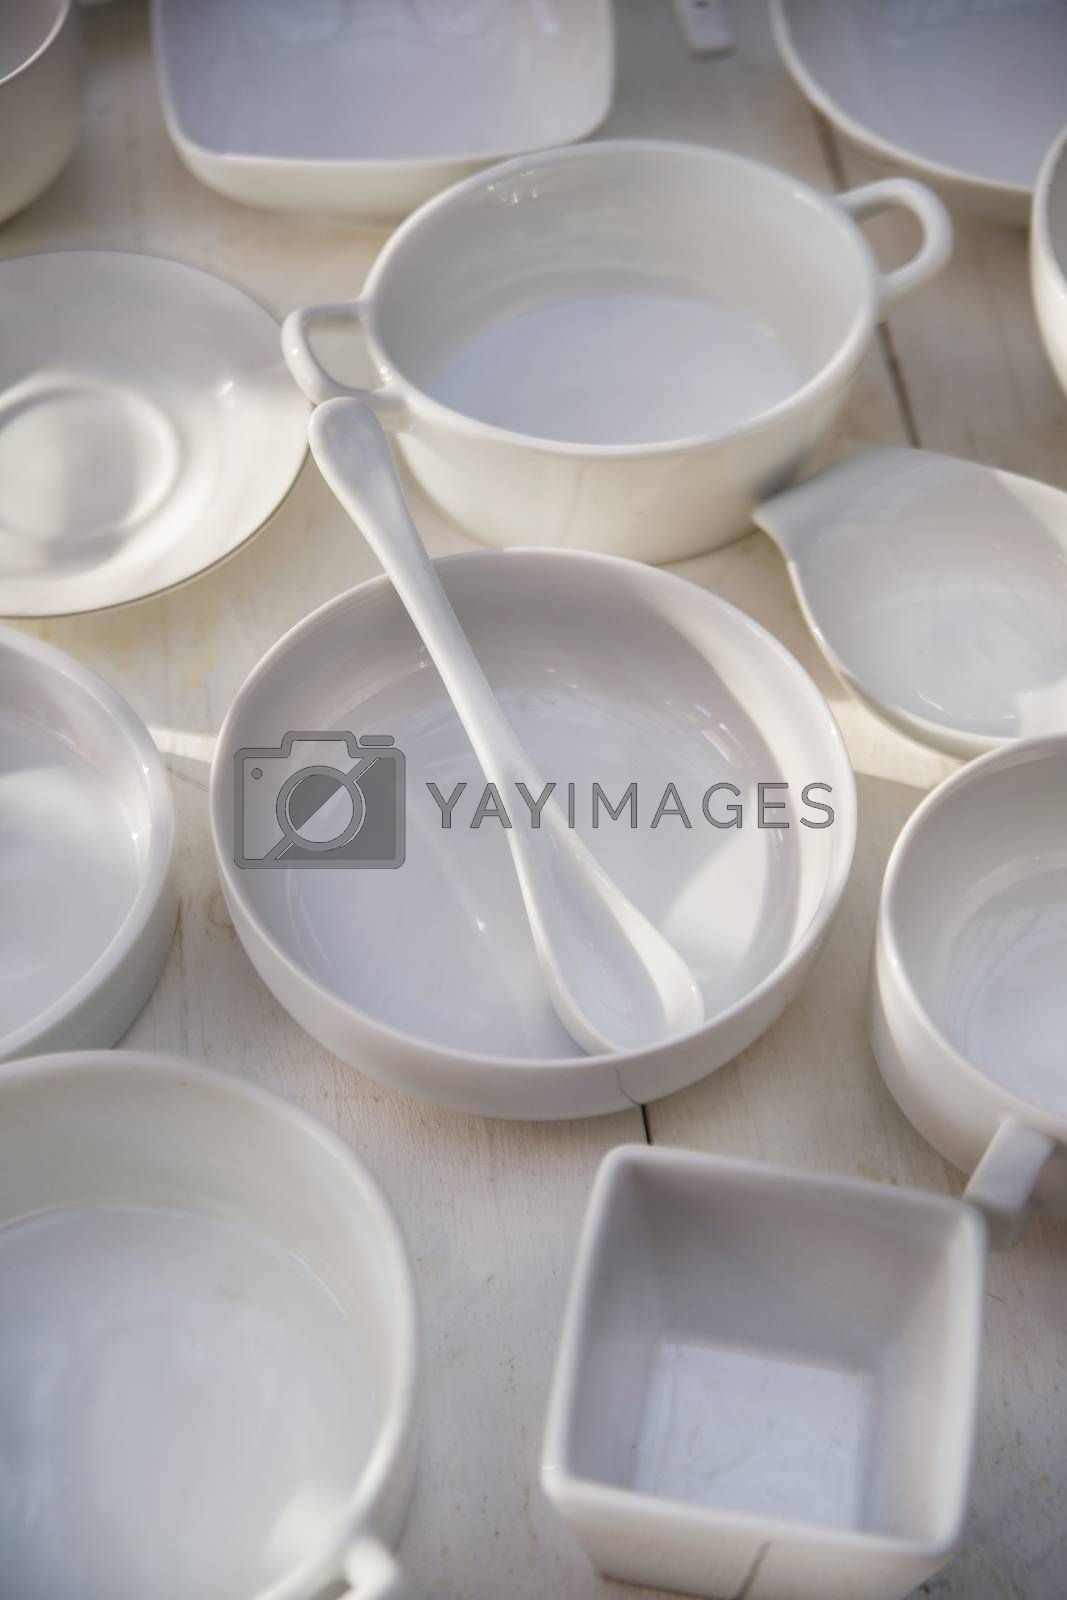 Royalty free image of Series of small containers for the kitchen  by marcoguidiph